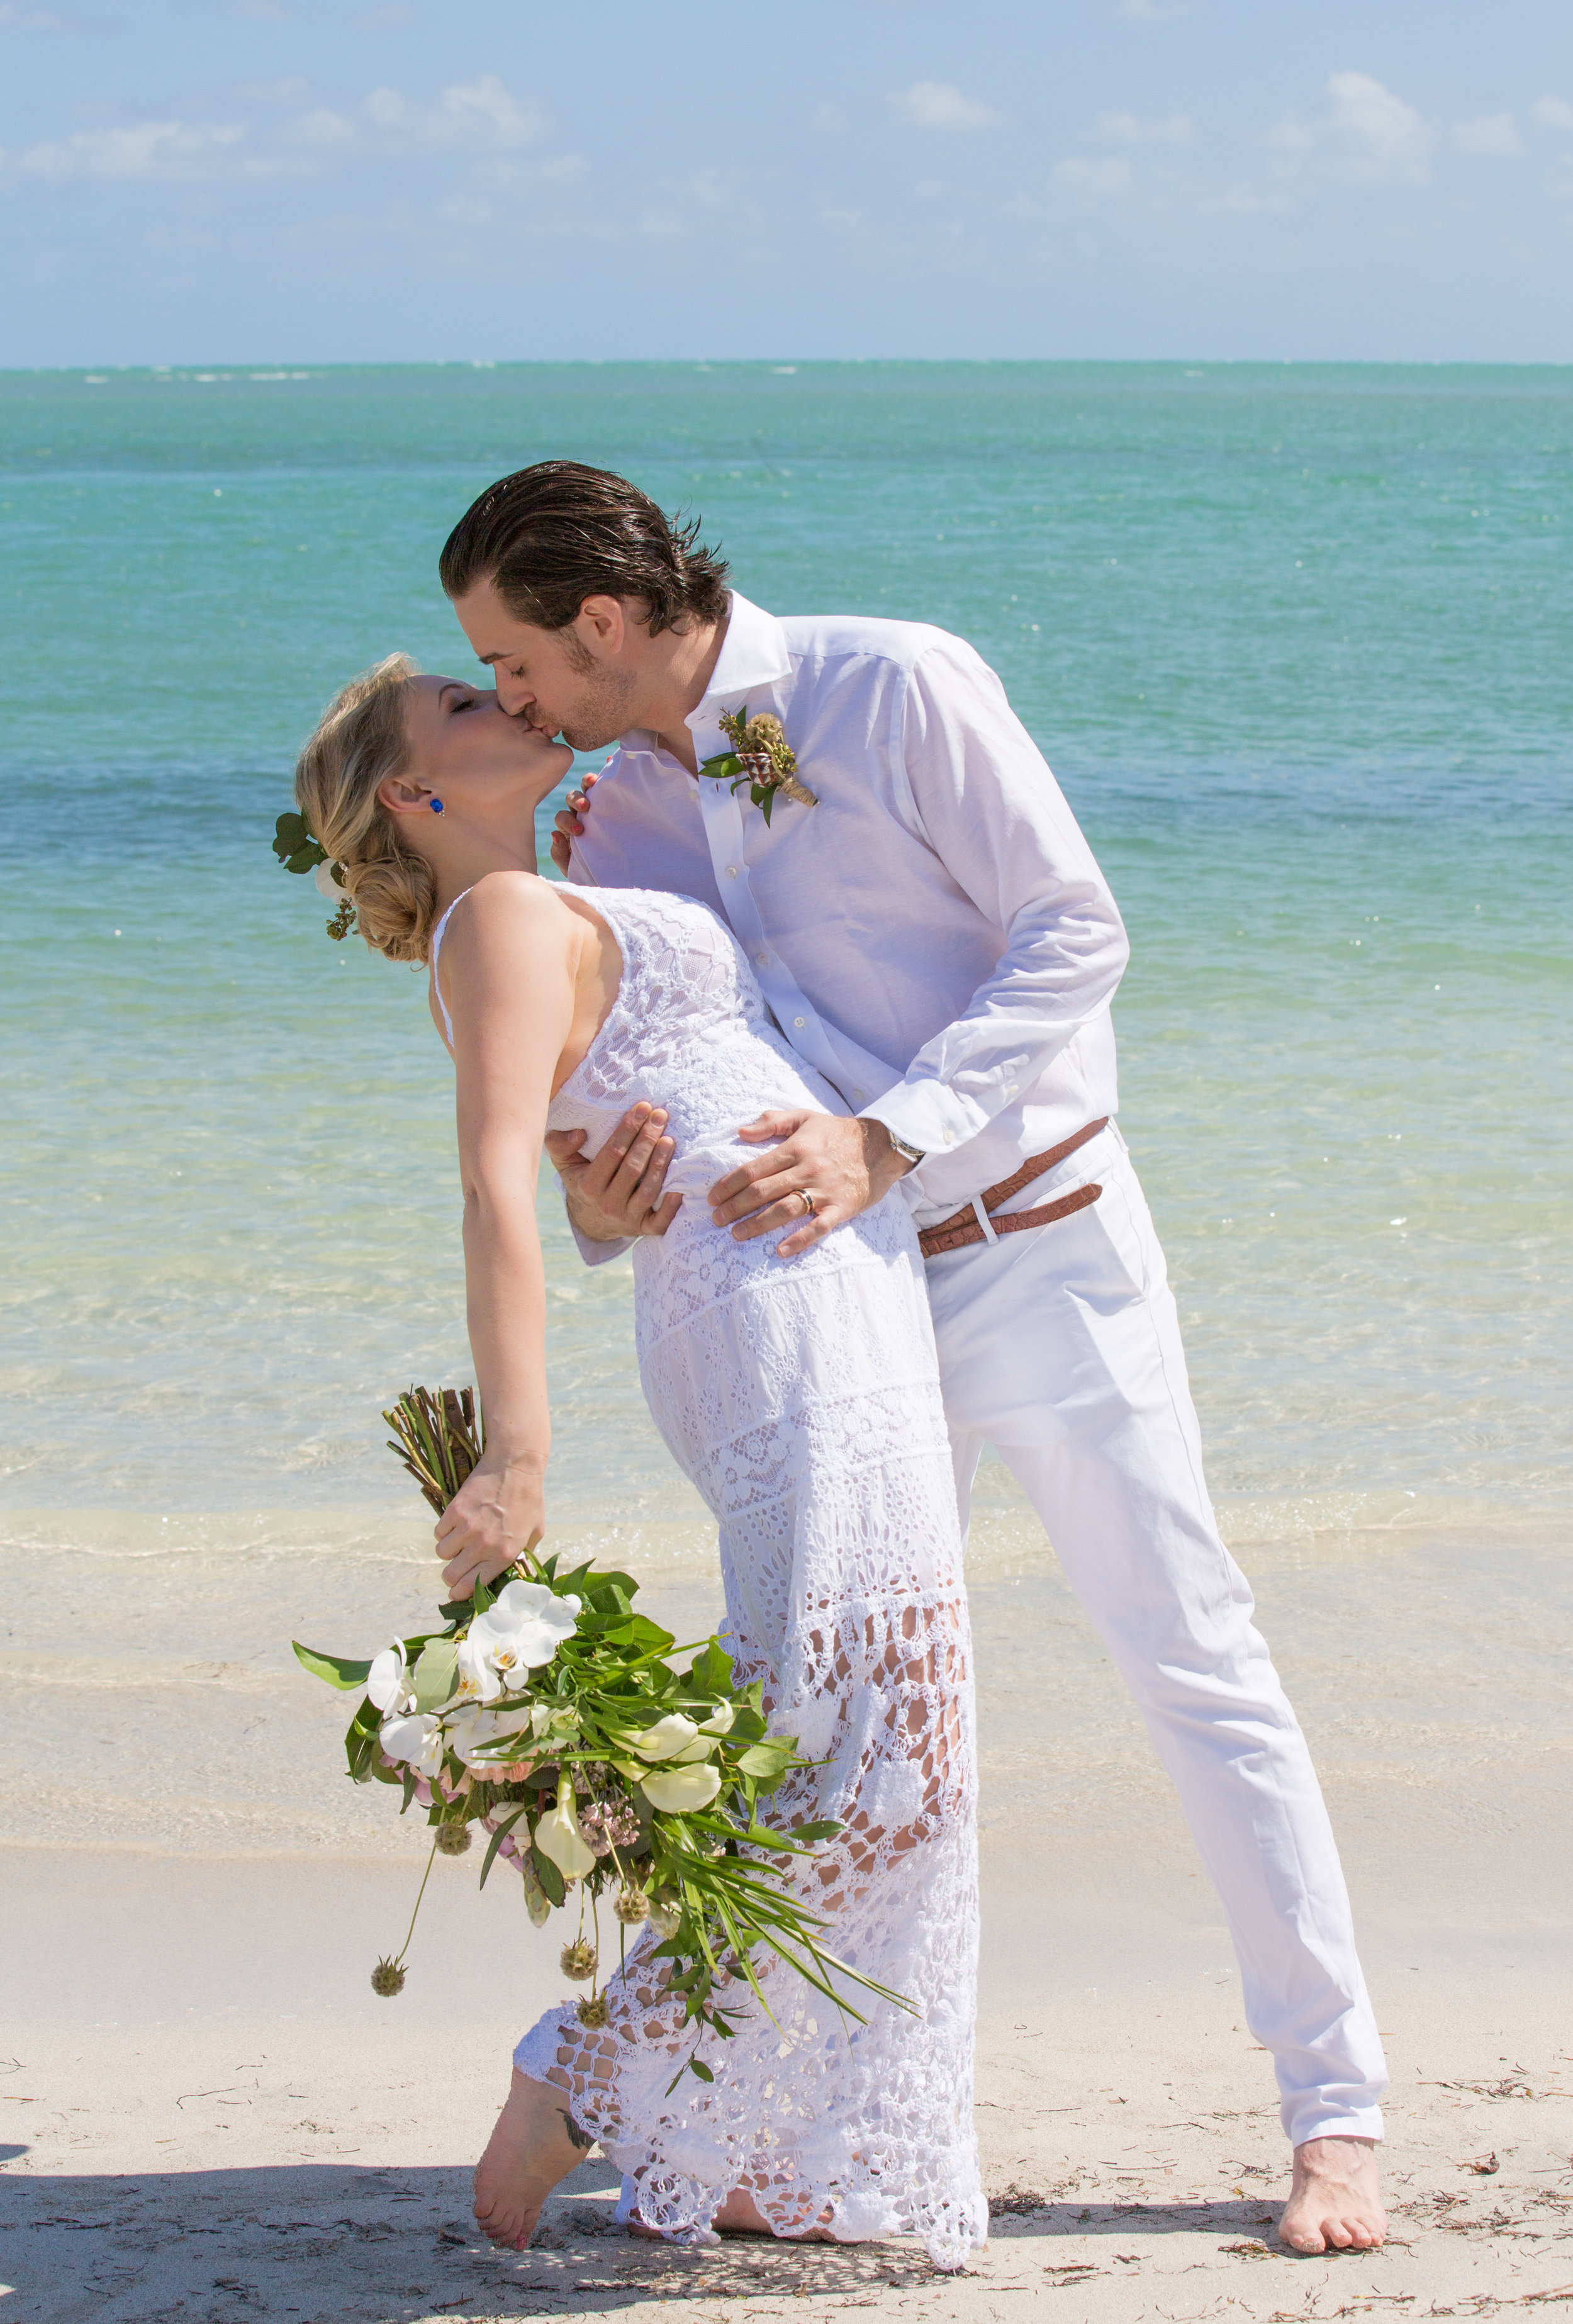 Groom and bride kiss at simple wedding on Key Biscayne. She is holding her tropical bride bouquet and he is wearing a vintage grooms boutonniere